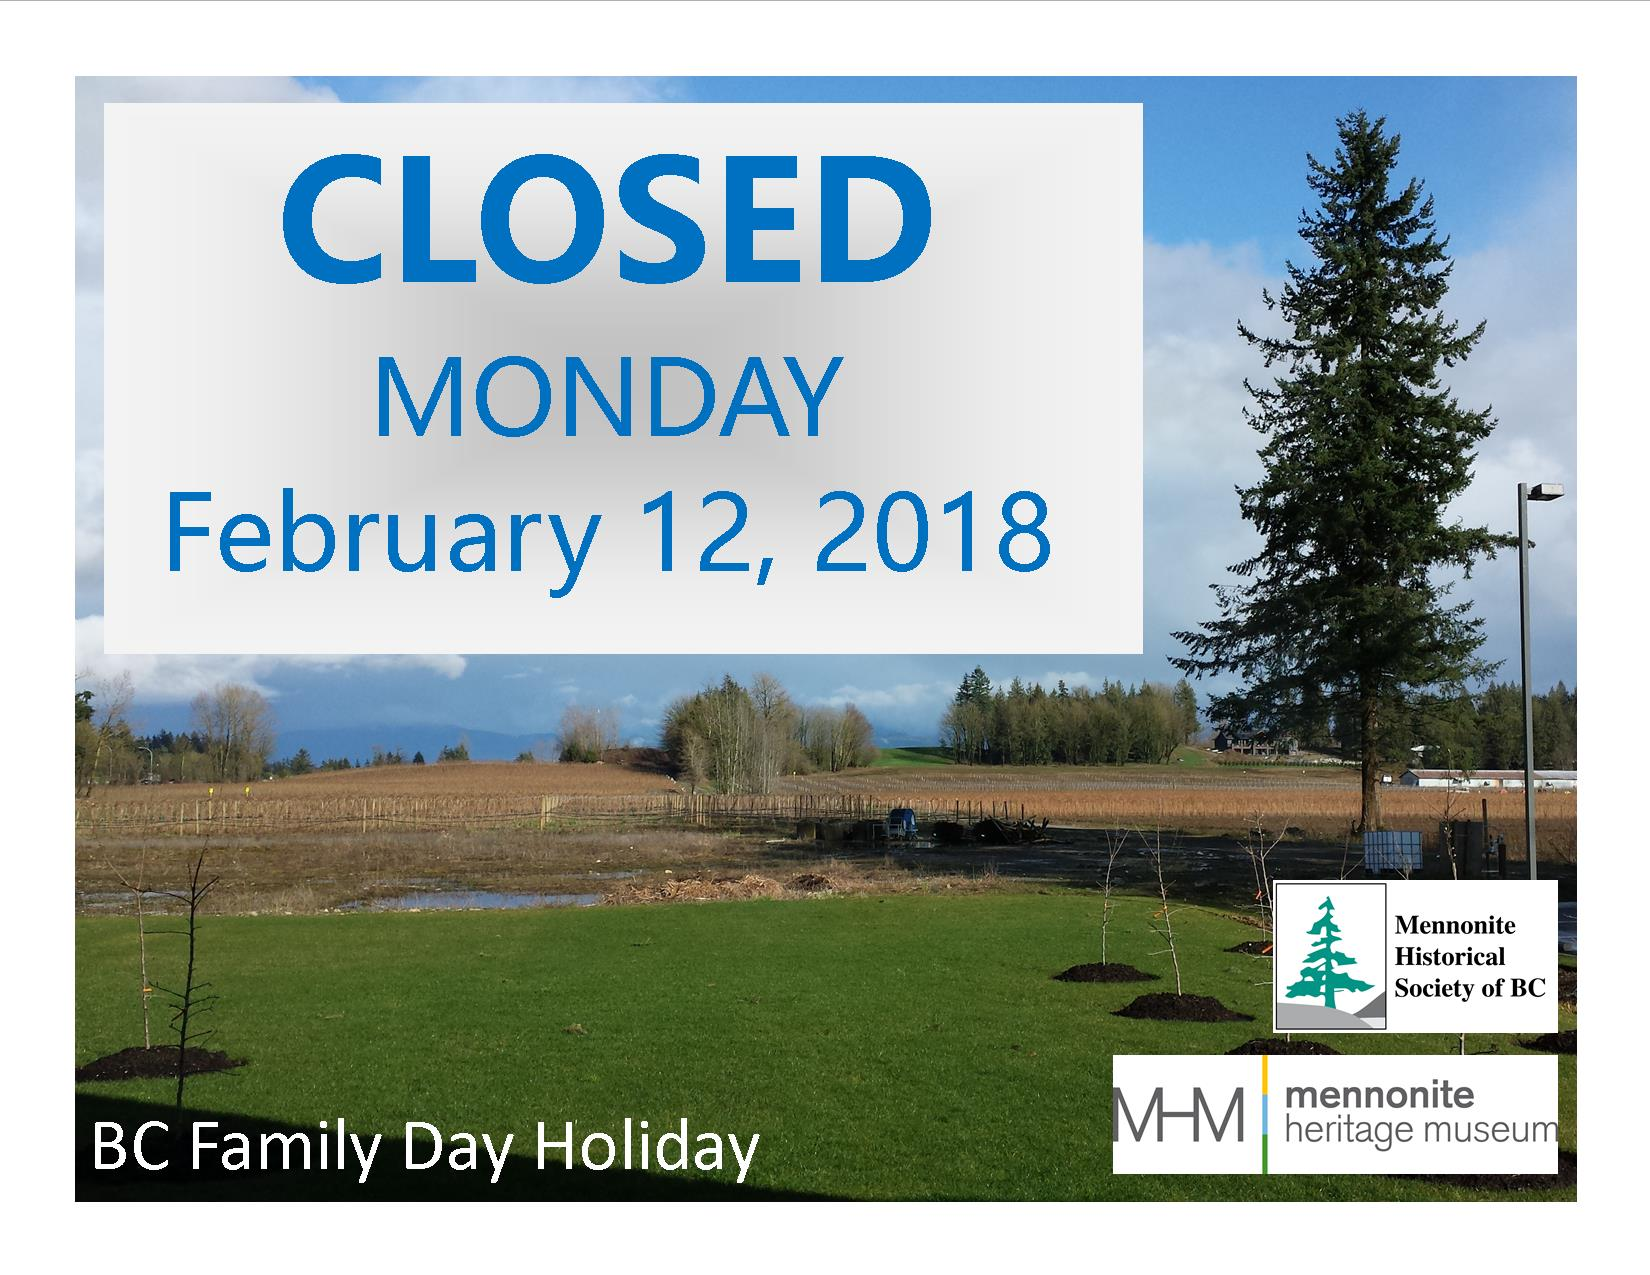 2018 02 12 Closed Sign for BC Family Day